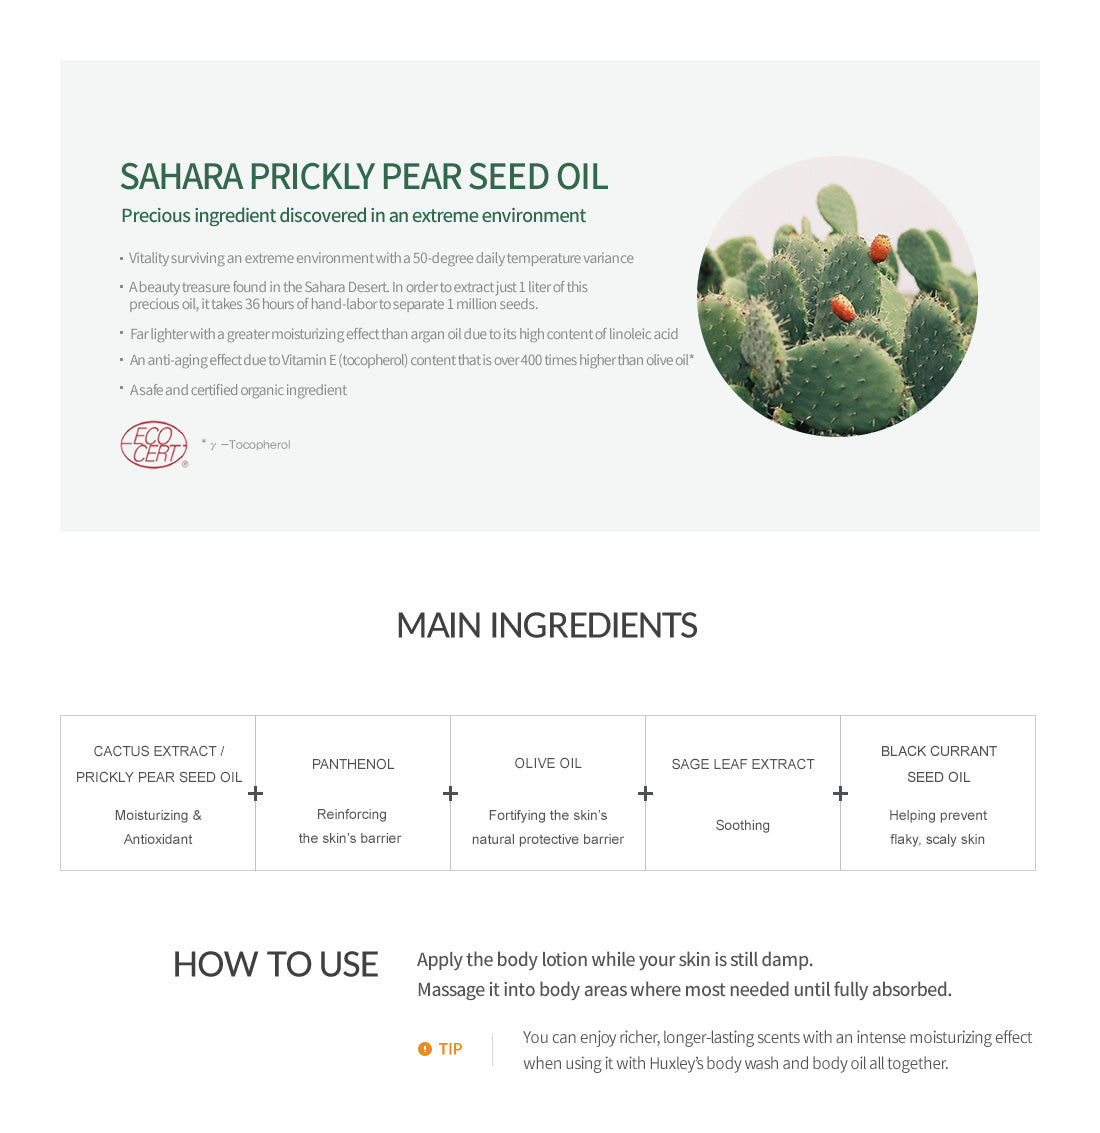 Huxley prickly pear seed oil